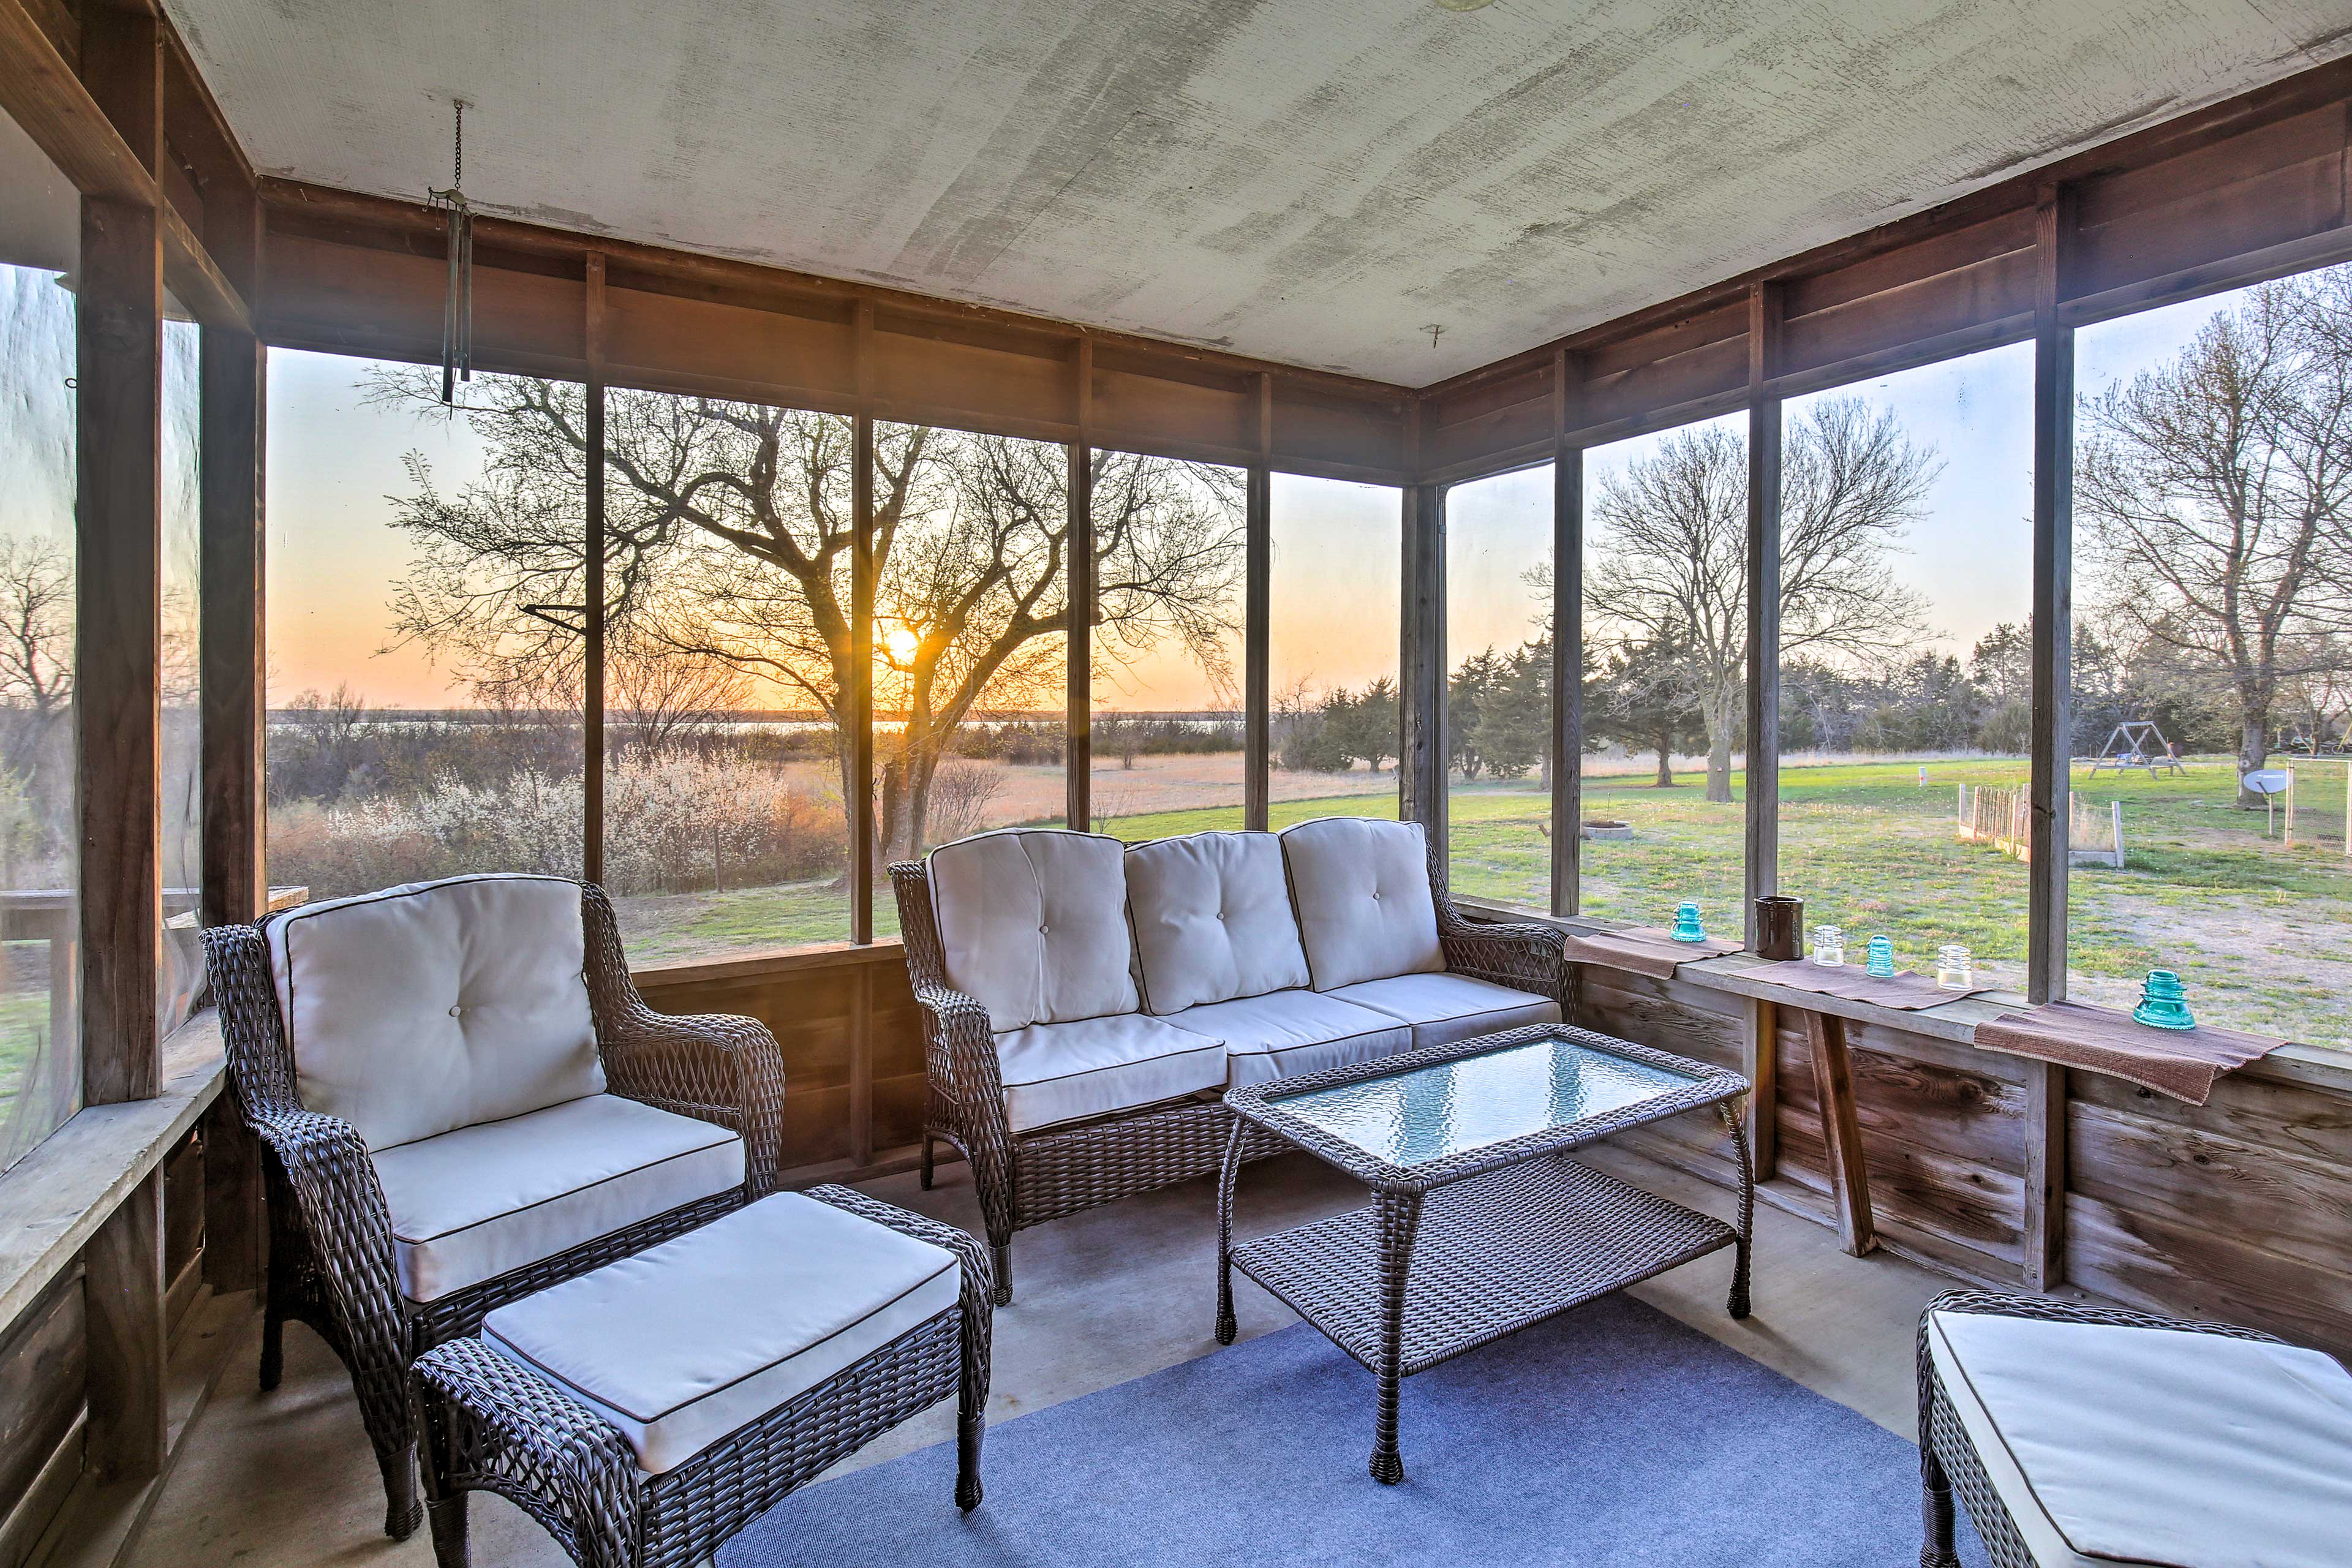 Explore Milford Lake from this waterfront vacation rental home.